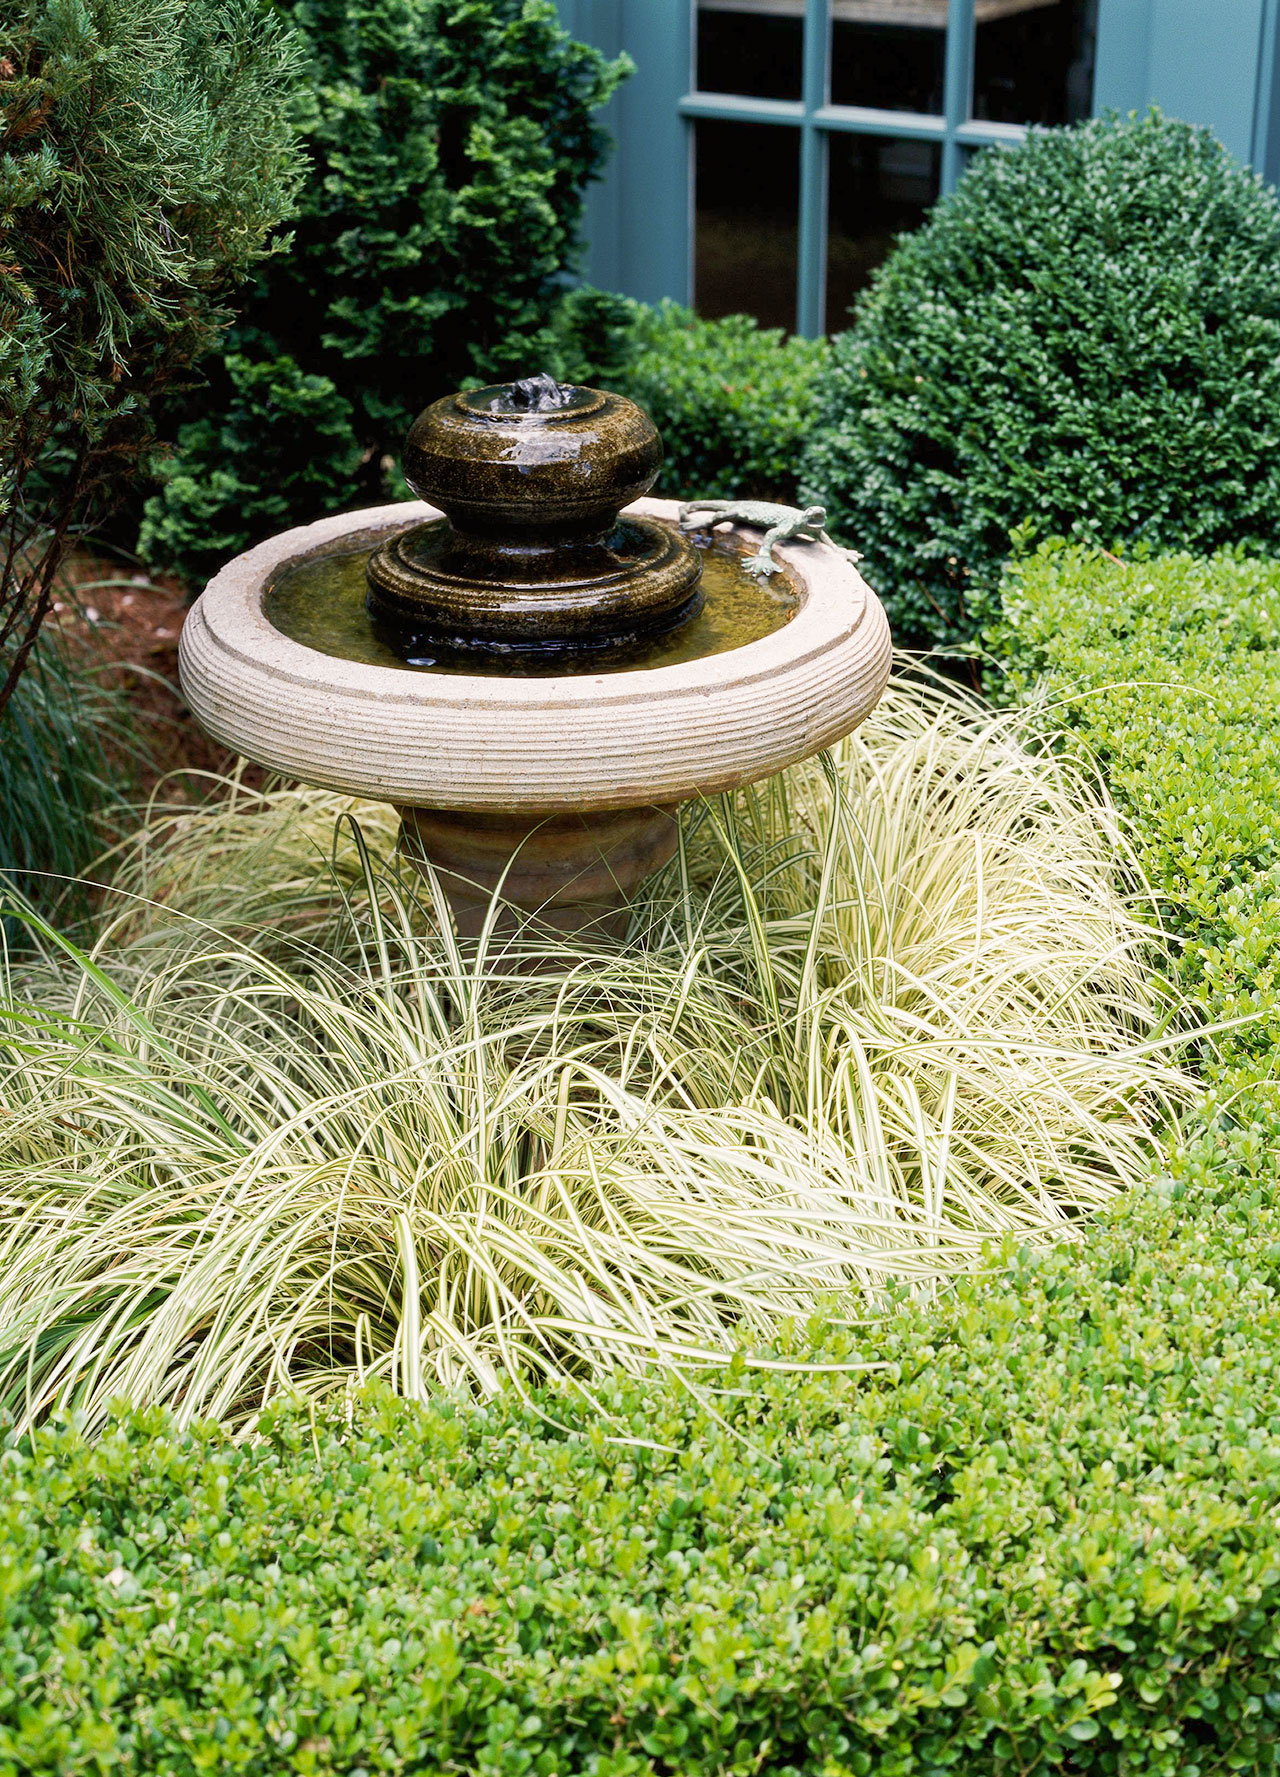 garden plants and shrubs surrounding bird bath